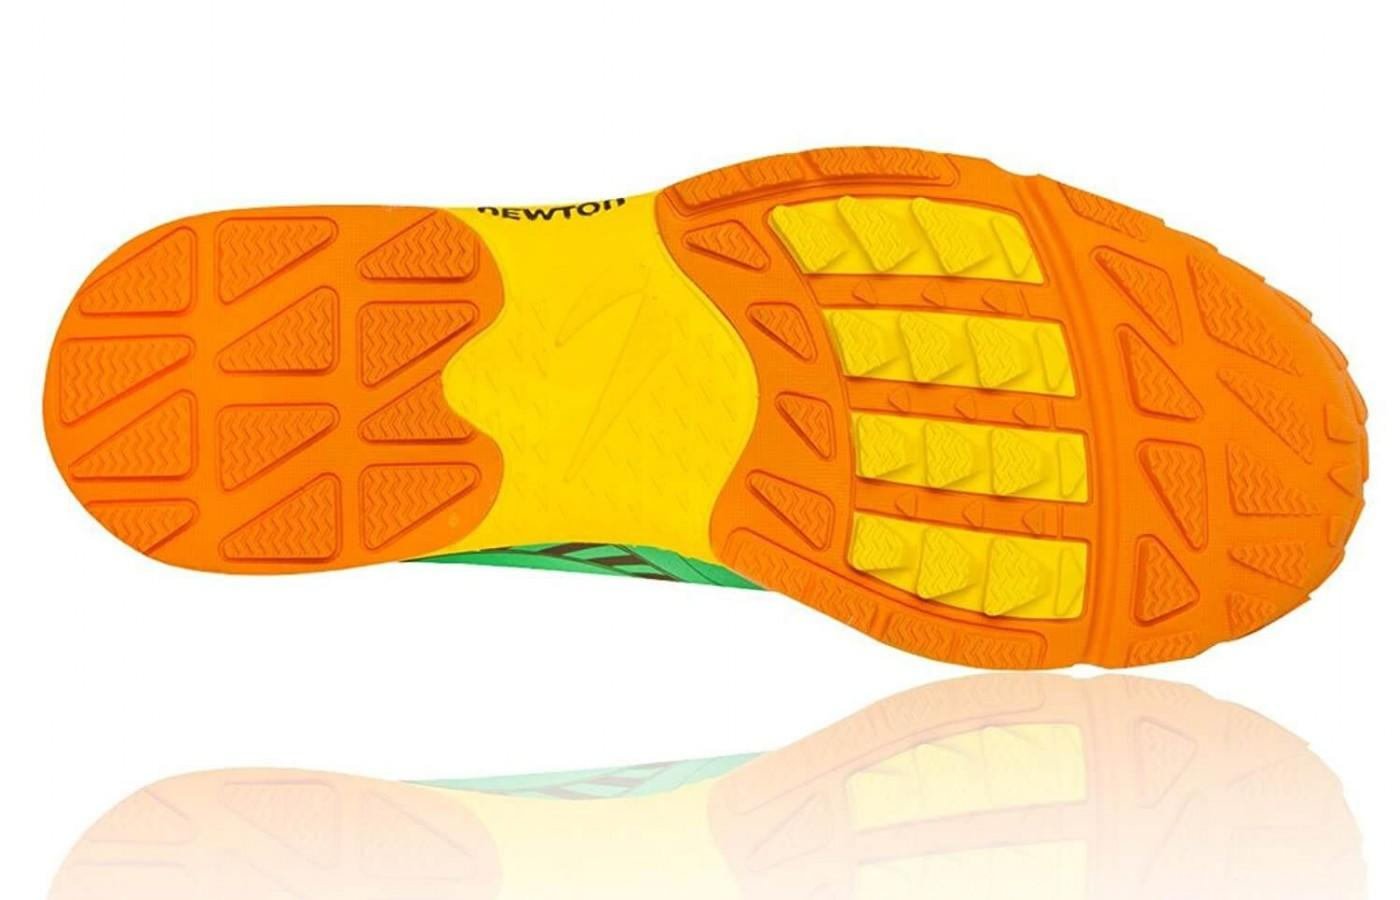 The outsole features Puma's patented action/reaction technology